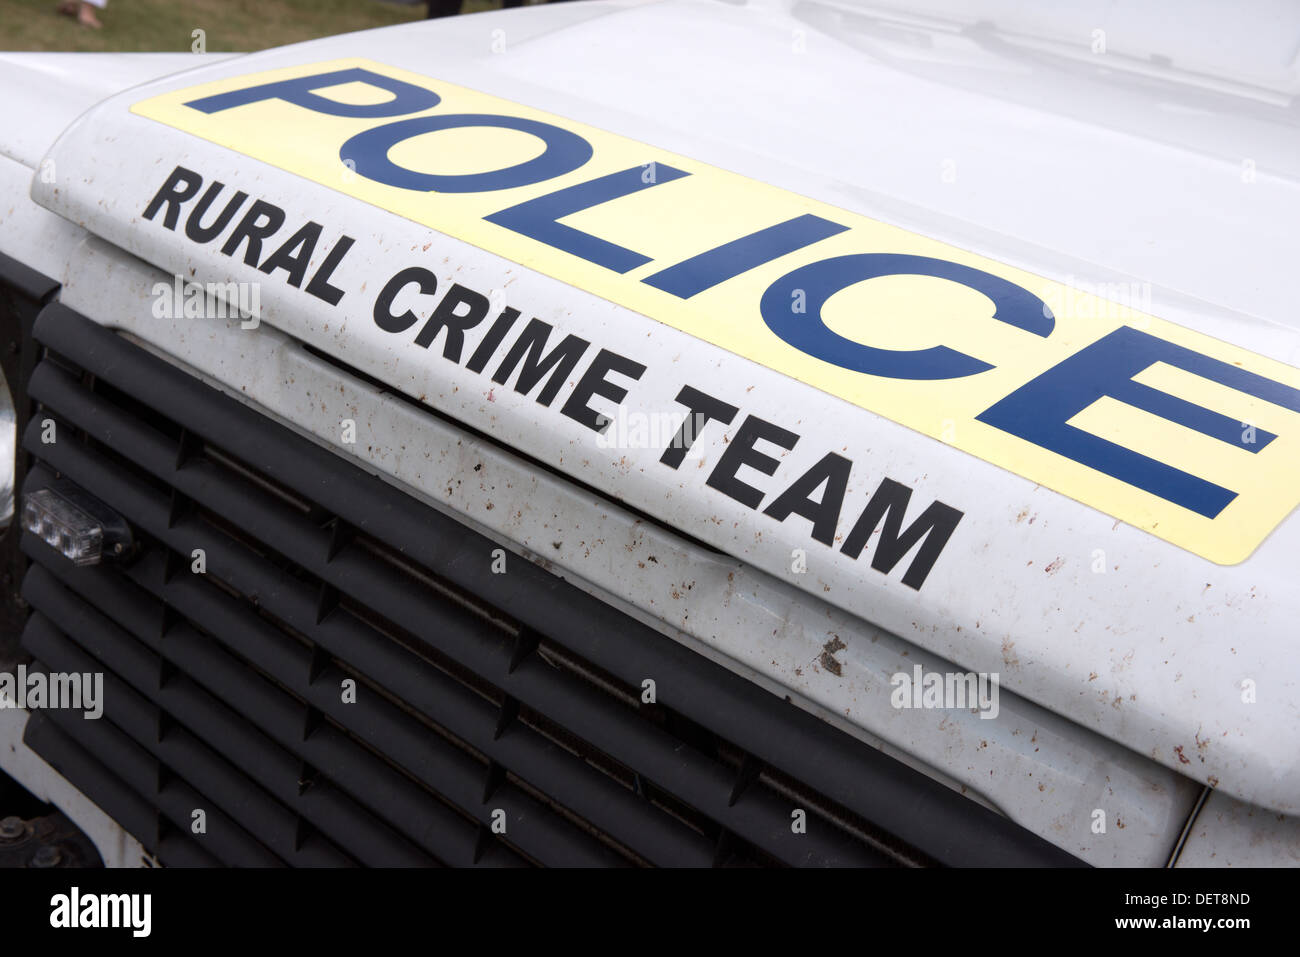 The text on the Wiltshire Police rural crime teams vehicle - Stock Image